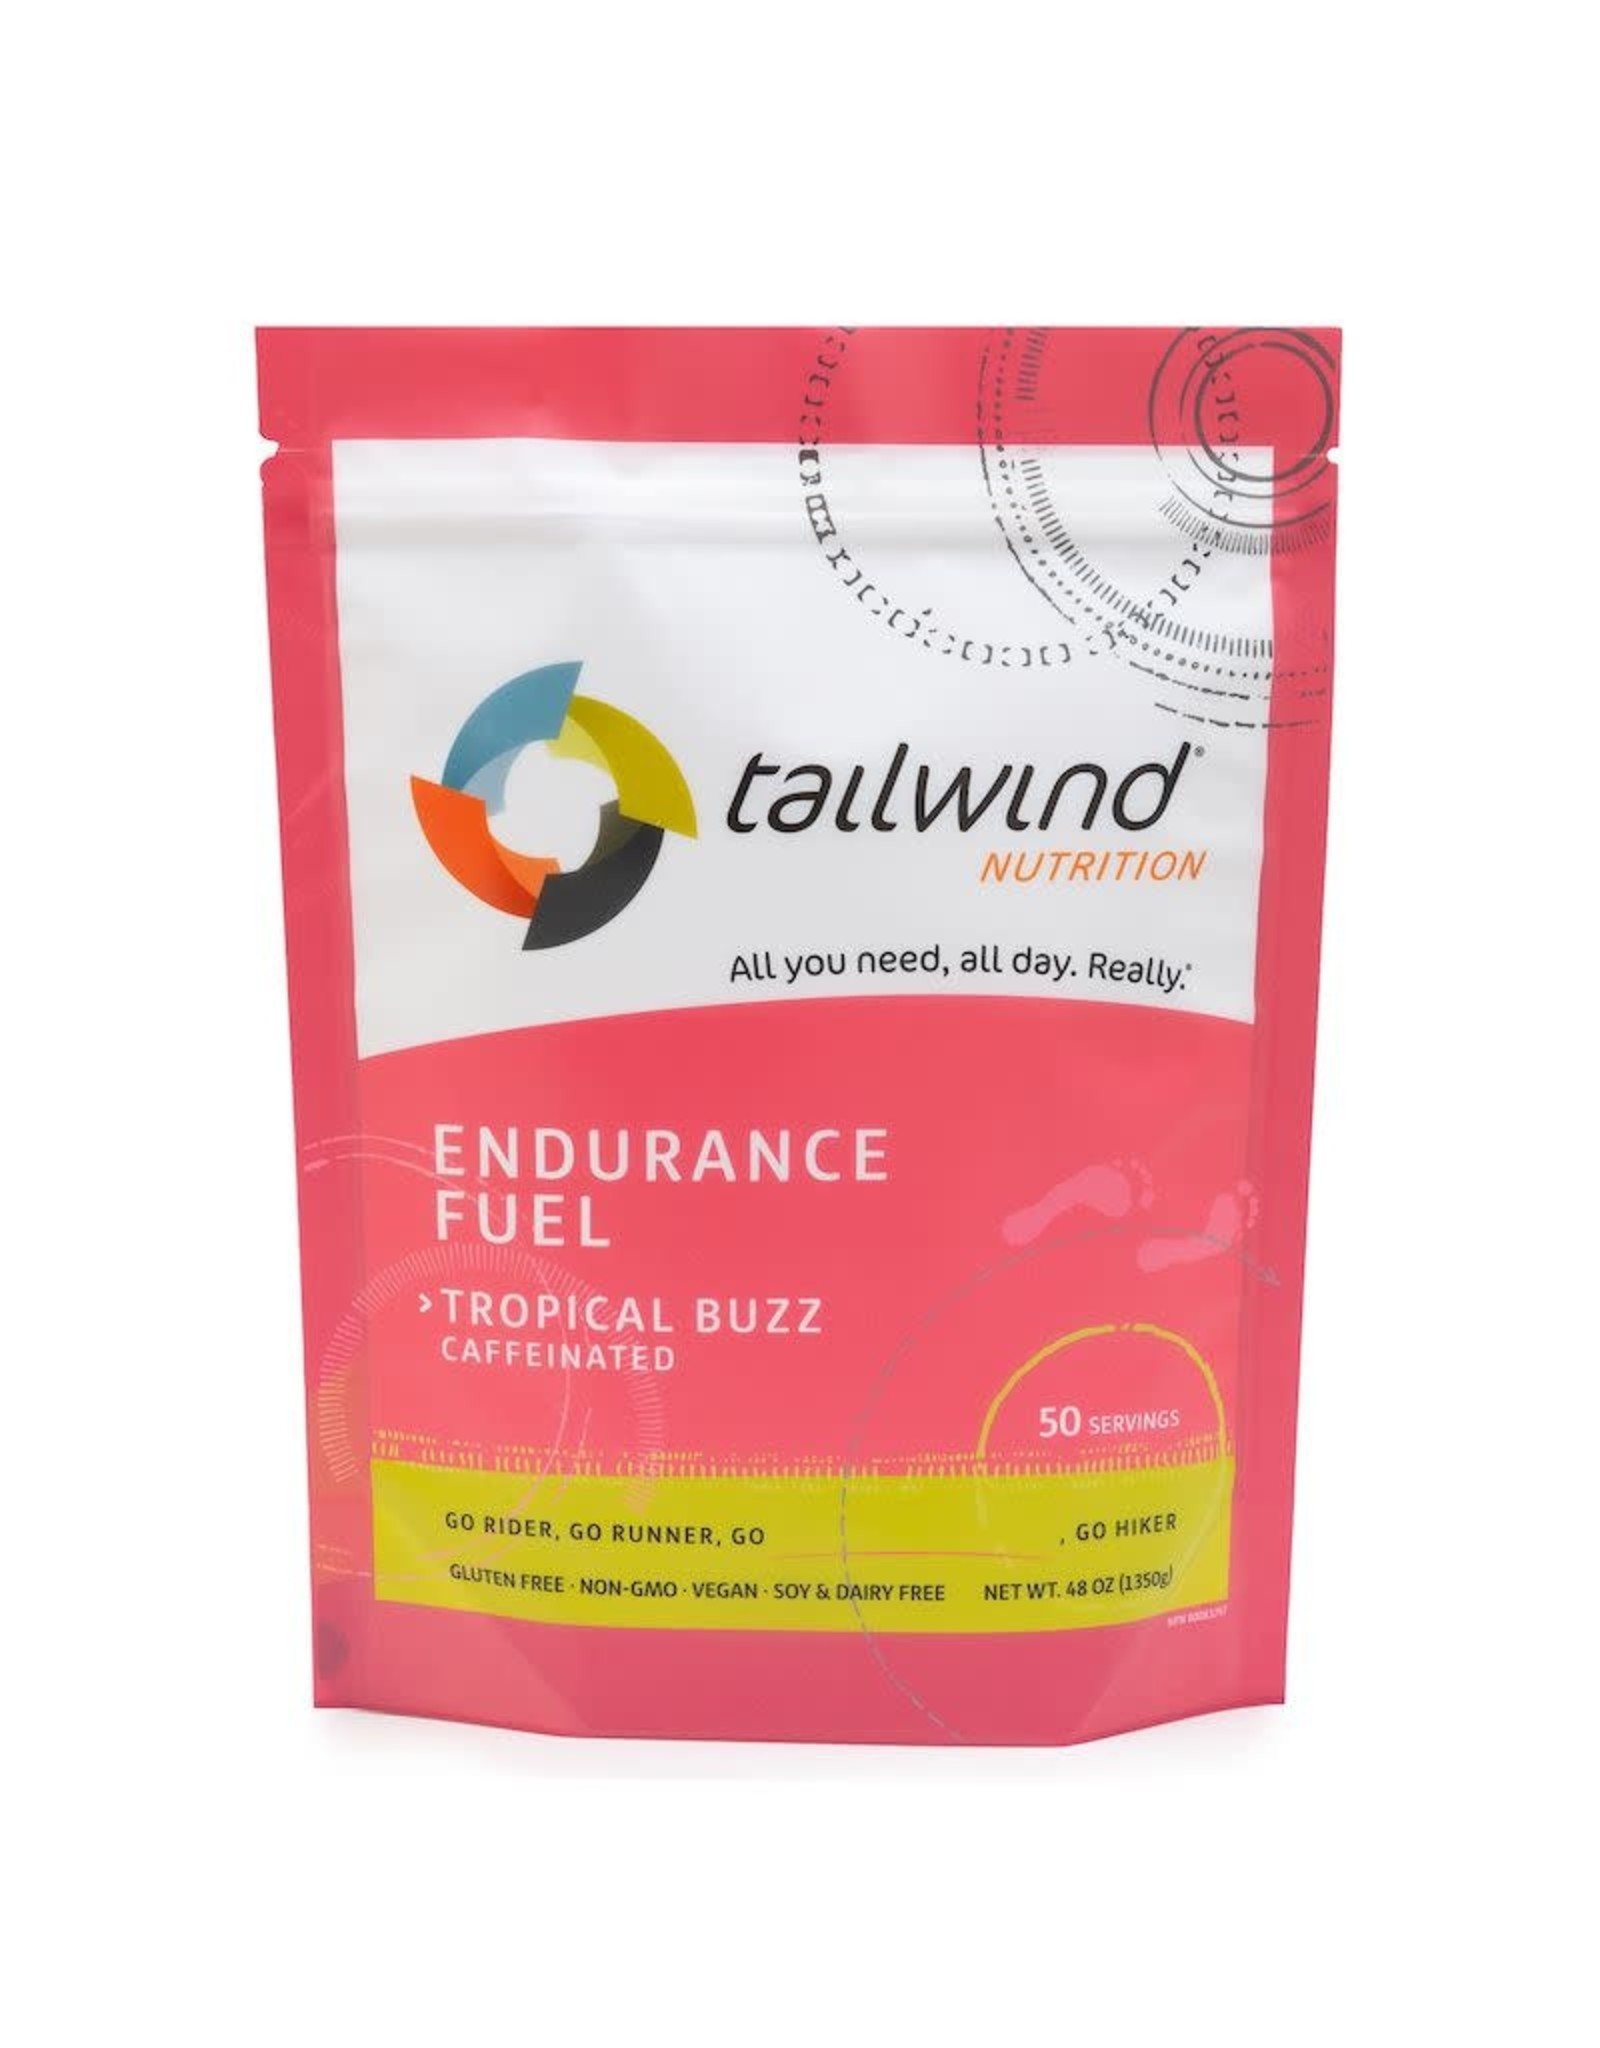 Tailwind Nutrition Endurance Fuel Tailwind Caffeinated Tropical Buzz (50 servings)